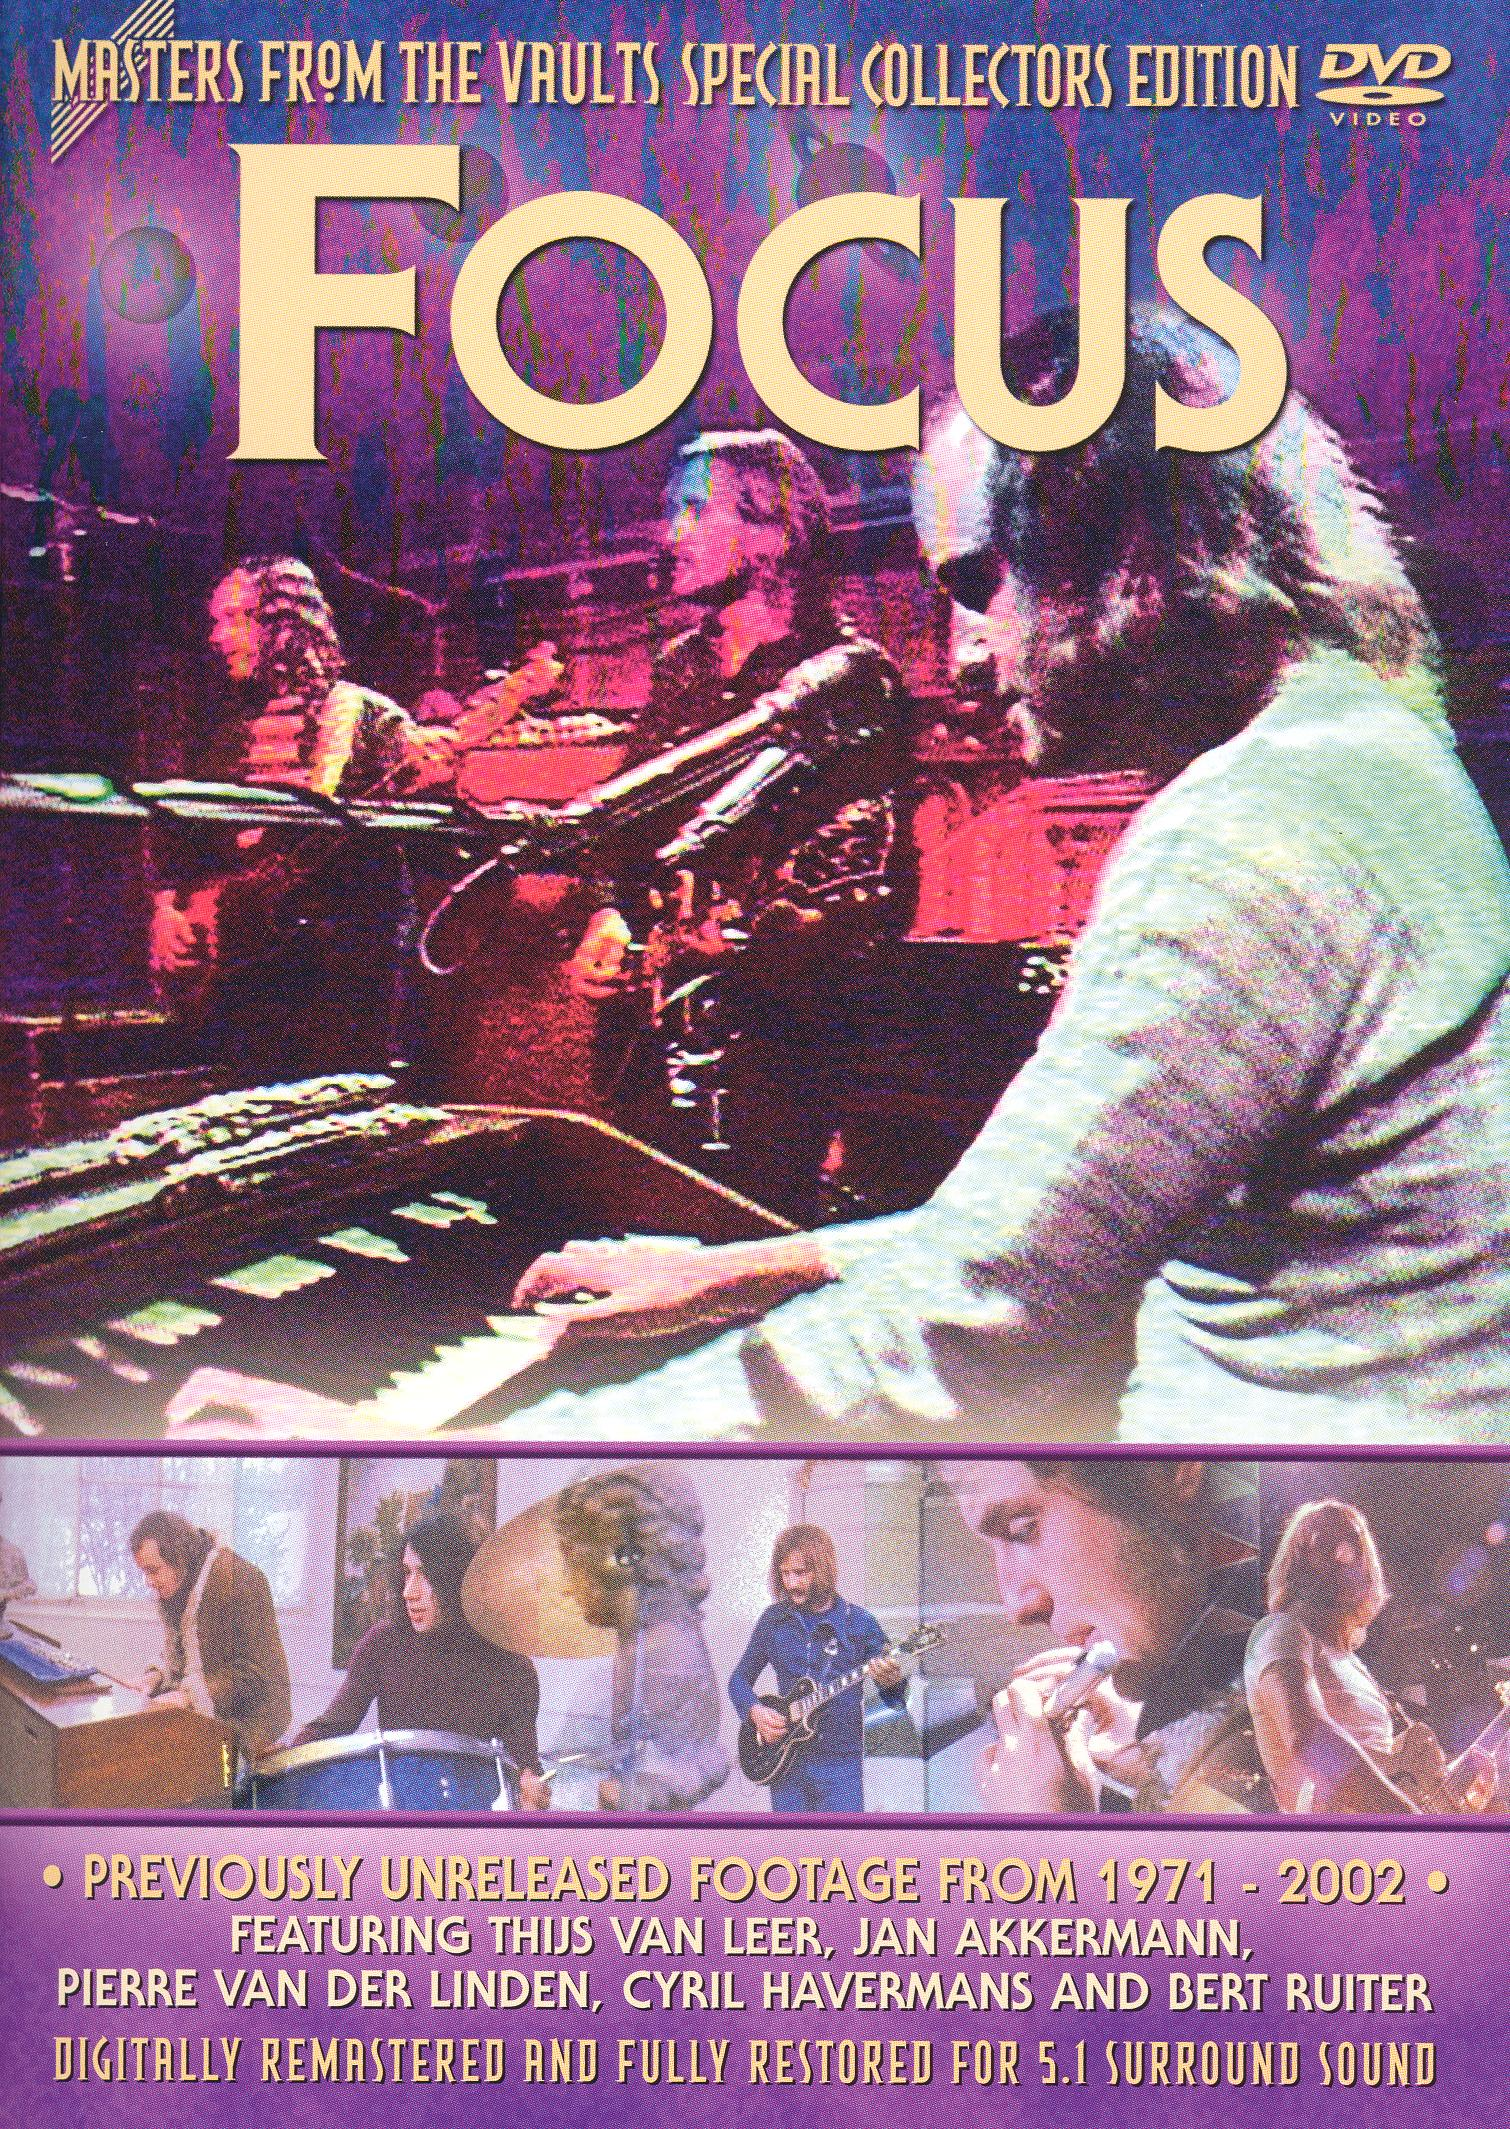 Masters From the Vaults: Focus